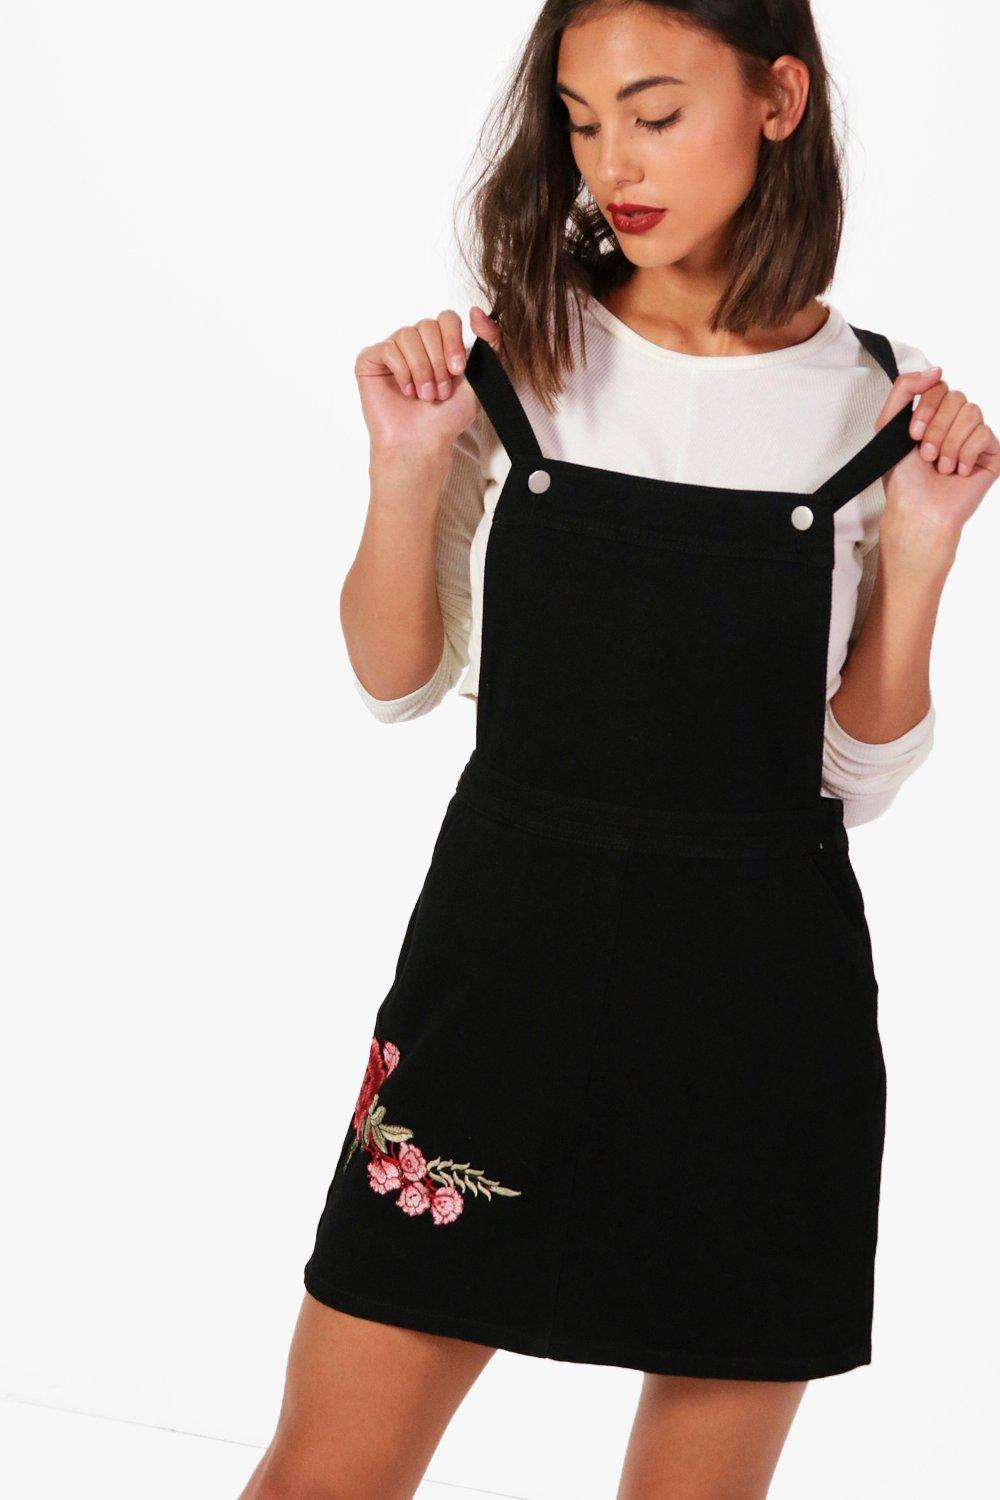 Denim Dress Rose Embroidered black Pinafore WZB55Xnq